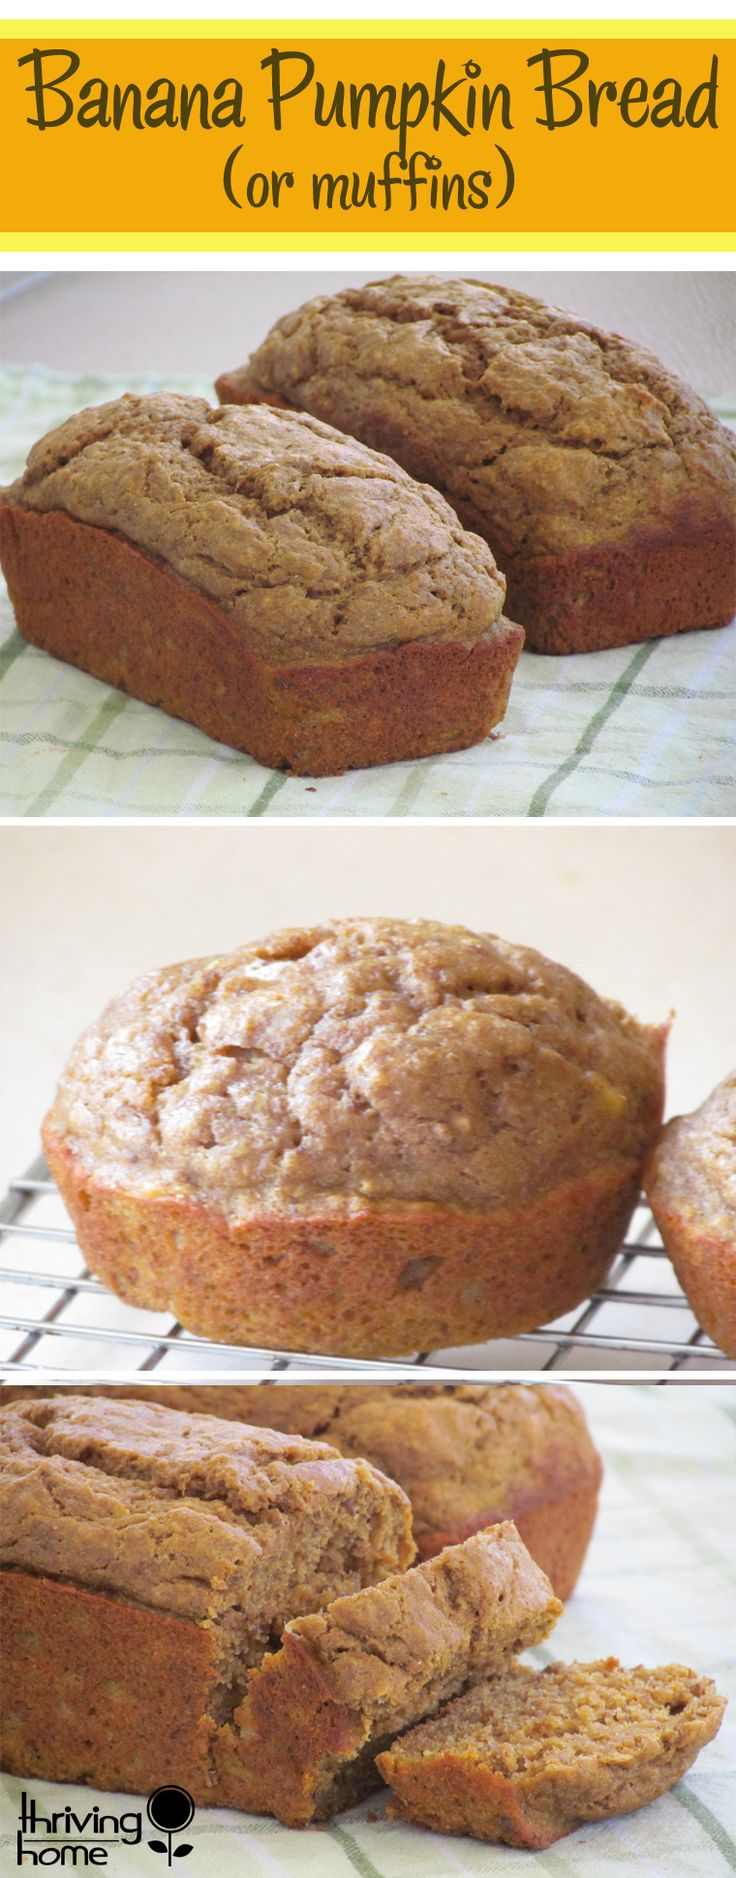 This whole wheat Banana Pumpkin Bread is absolutely delicious and healthy!